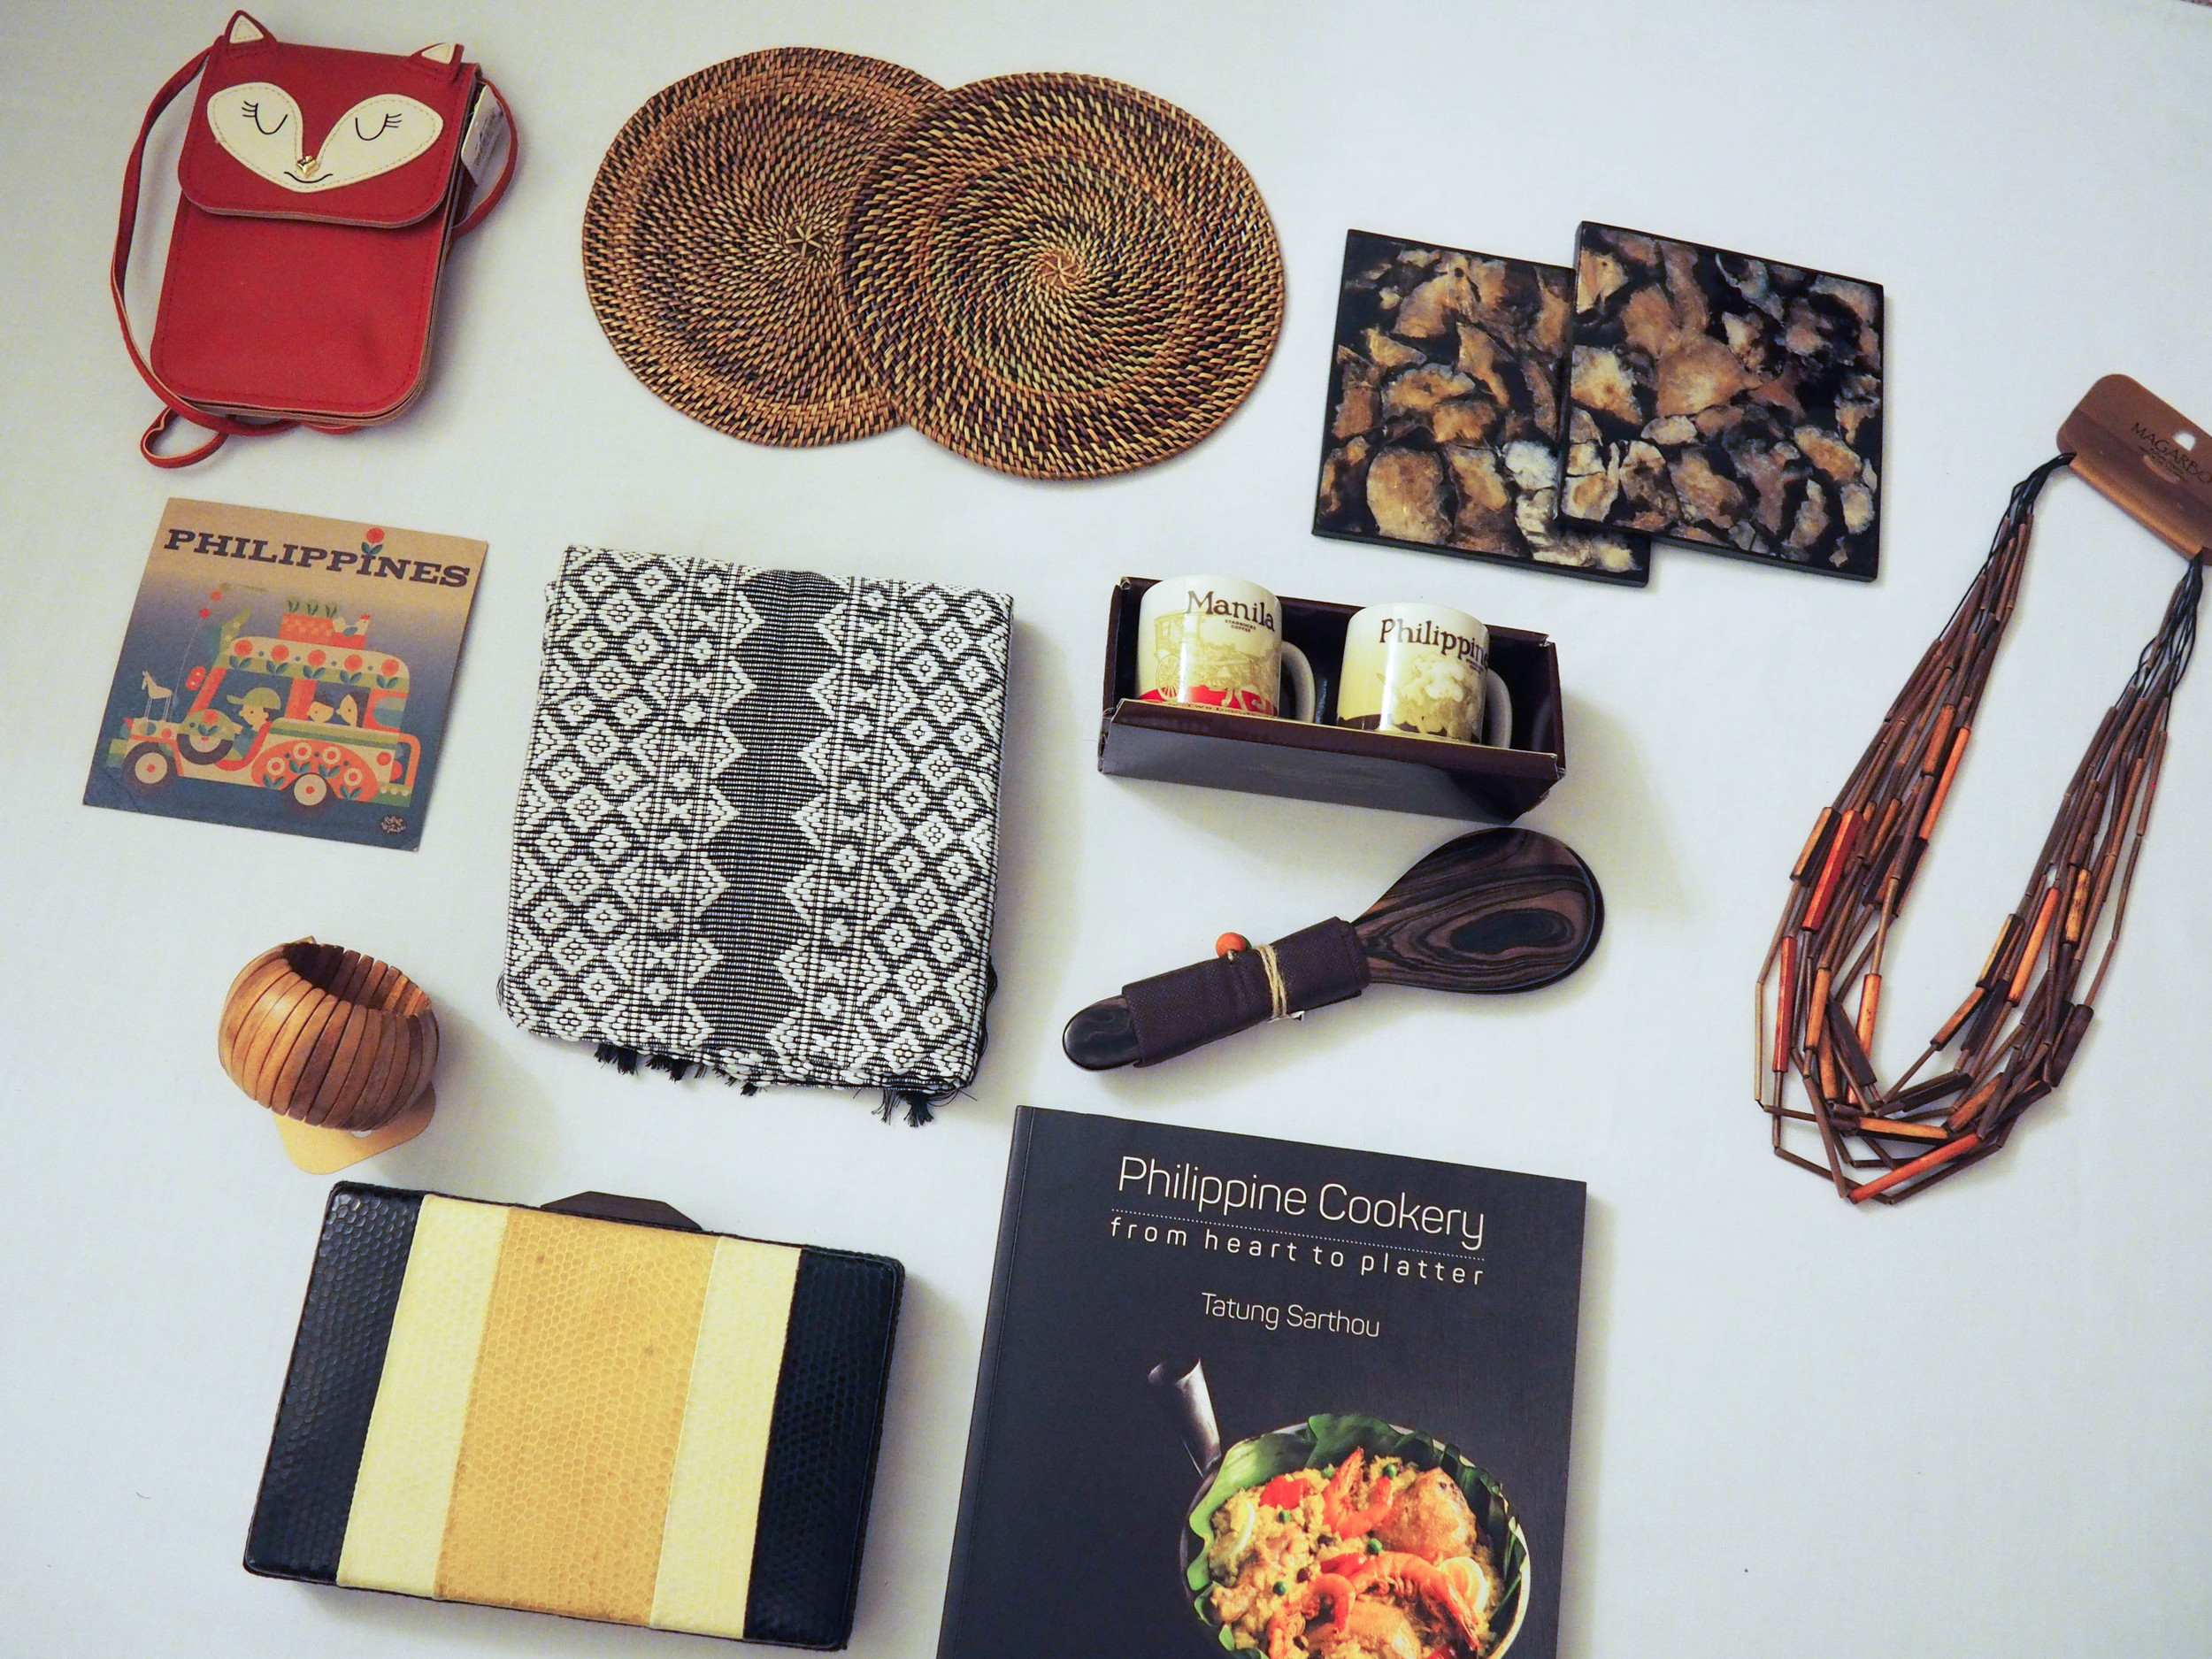 Philippine finds: Fox cell phone purse,woven trivets, capiz shell trivets, wooden necklace, local print, woven throw blanket, acacia wood spoon, doppio cups, wooden bracelet, snakeskin clutch, cookbook